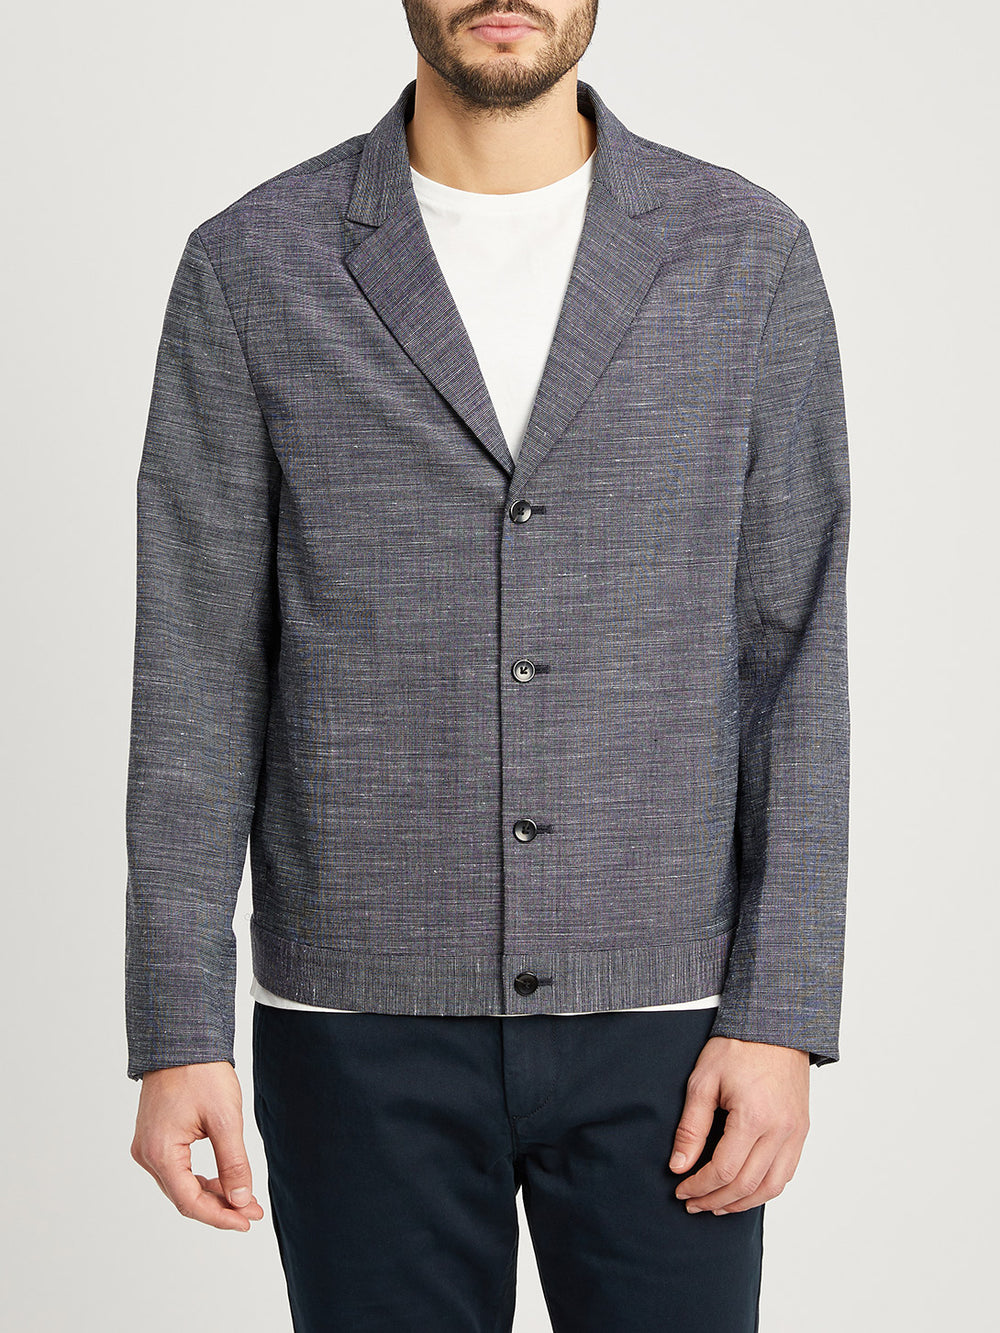 NAVY blazers for men leonard blazer ons clothing